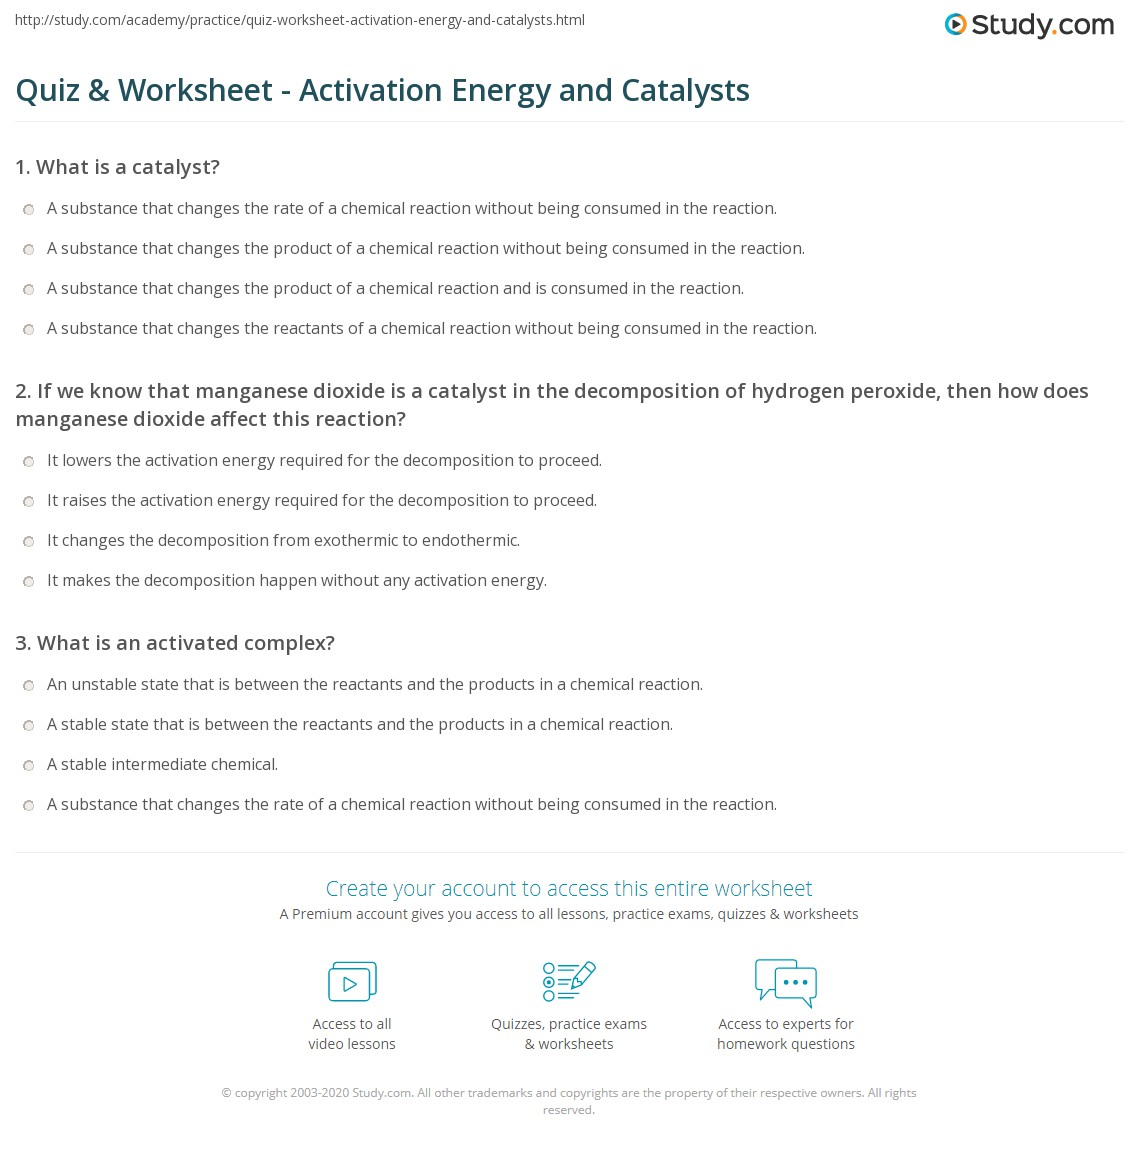 Quiz & Worksheet - Activation Energy and Catalysts | Study.com